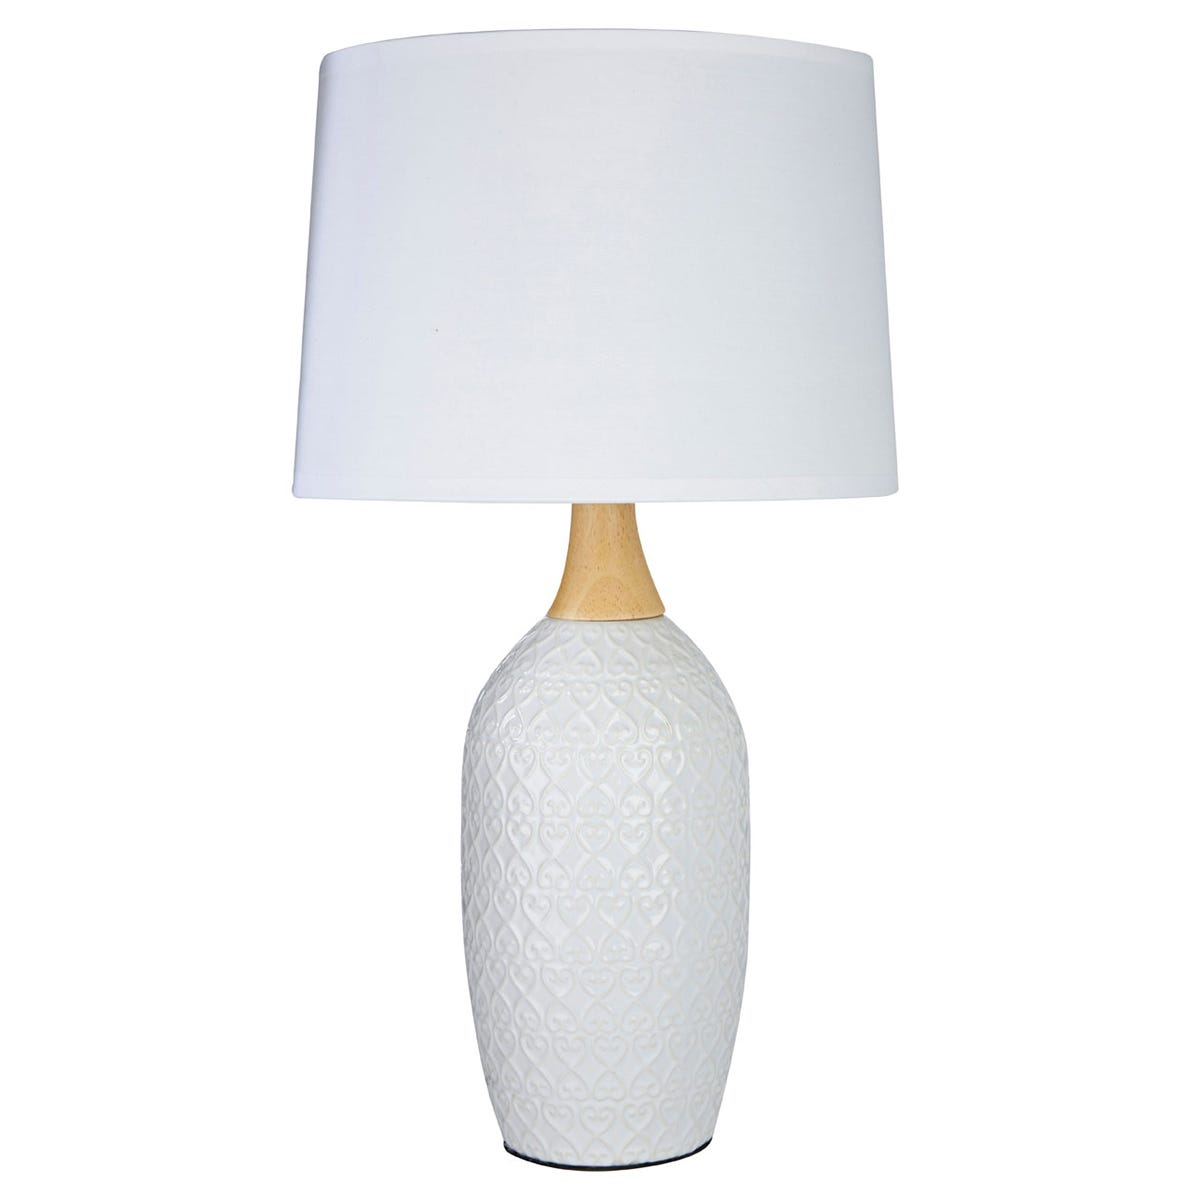 Premier Housewares Willow Table Lamp in White Ceramic with White Fabric Shade